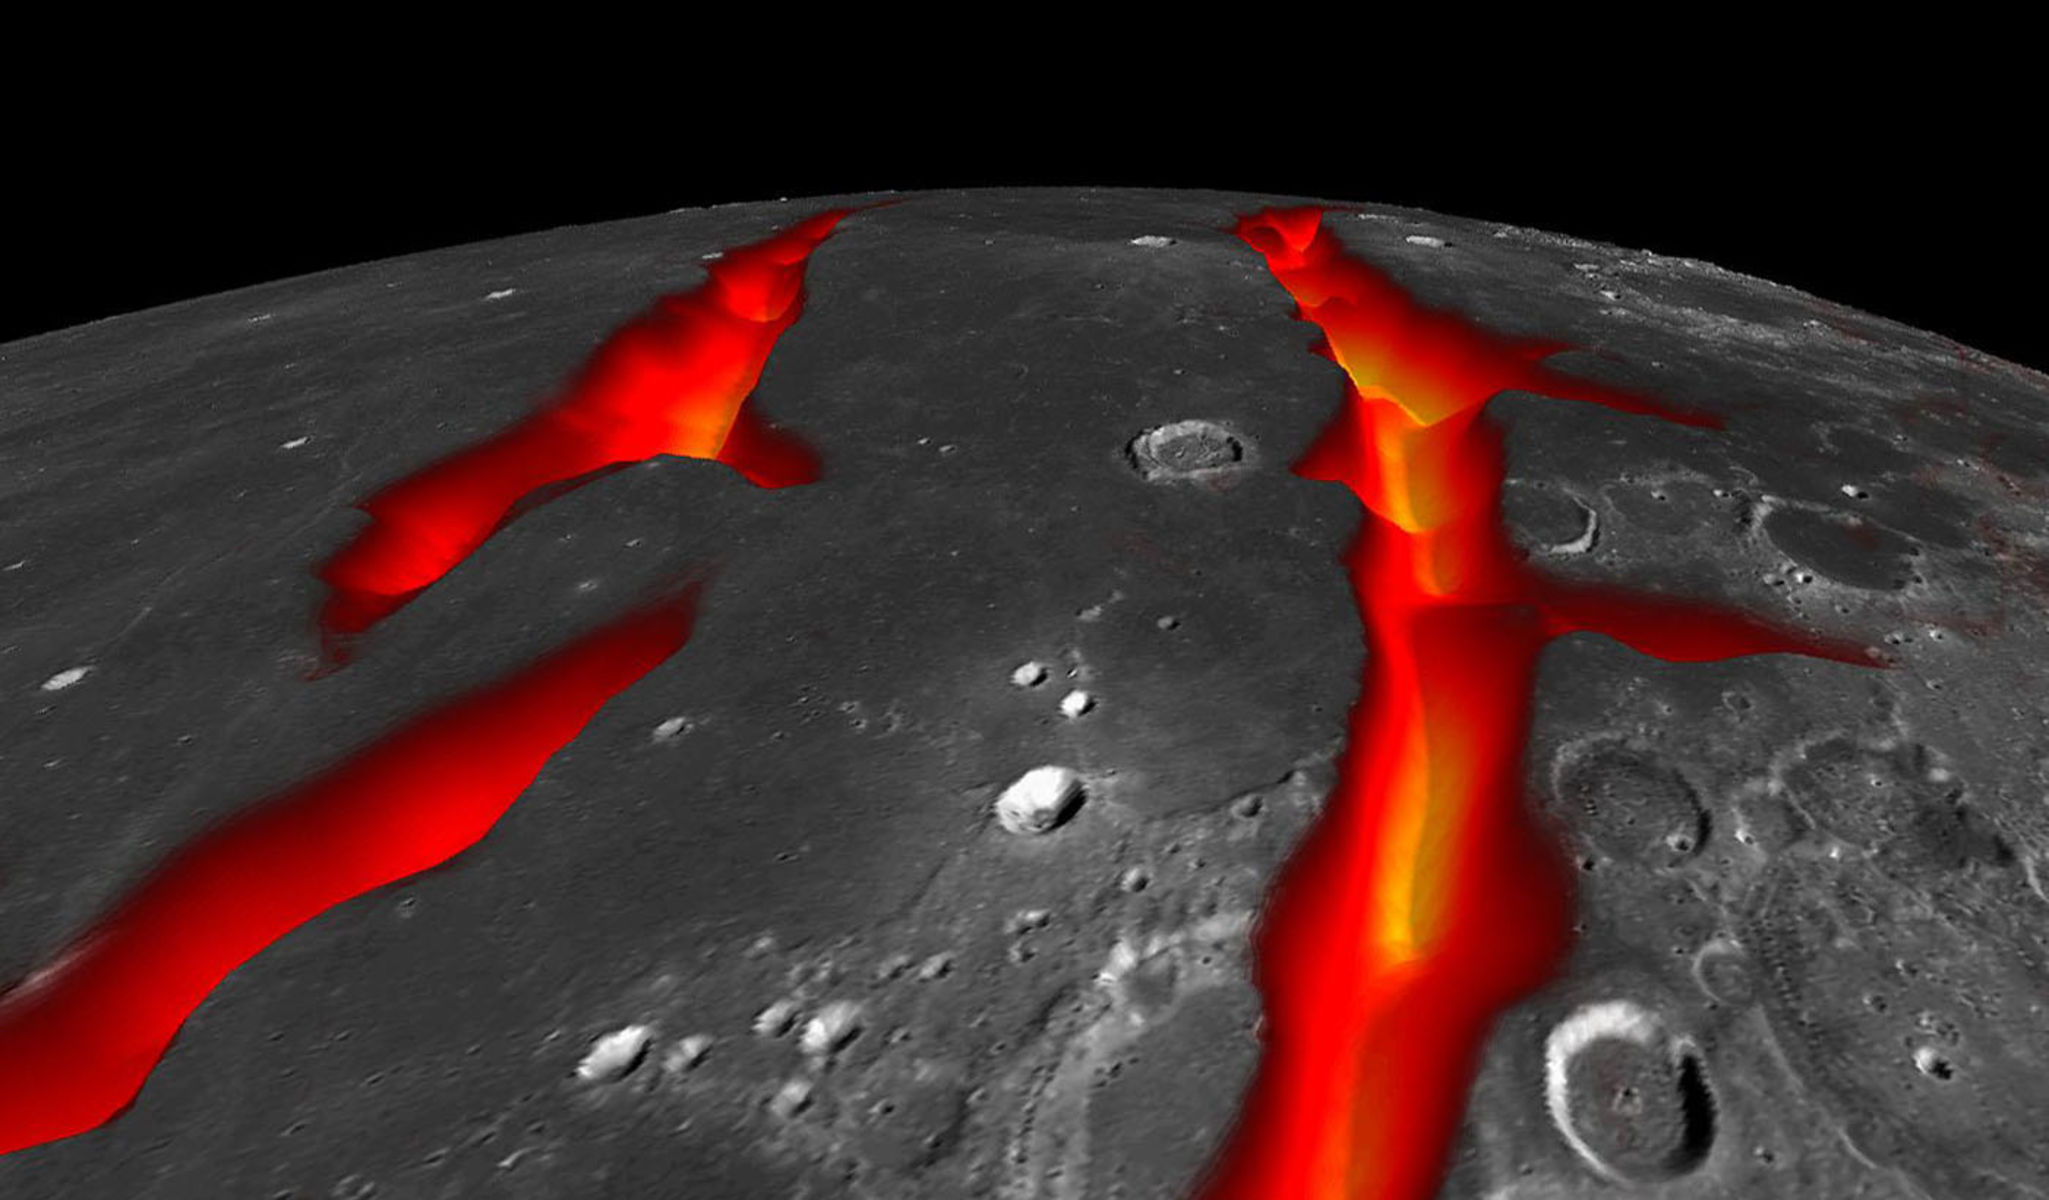 Rendering depicts the surface of the moon with two bright streams of lava flowing across the surface.